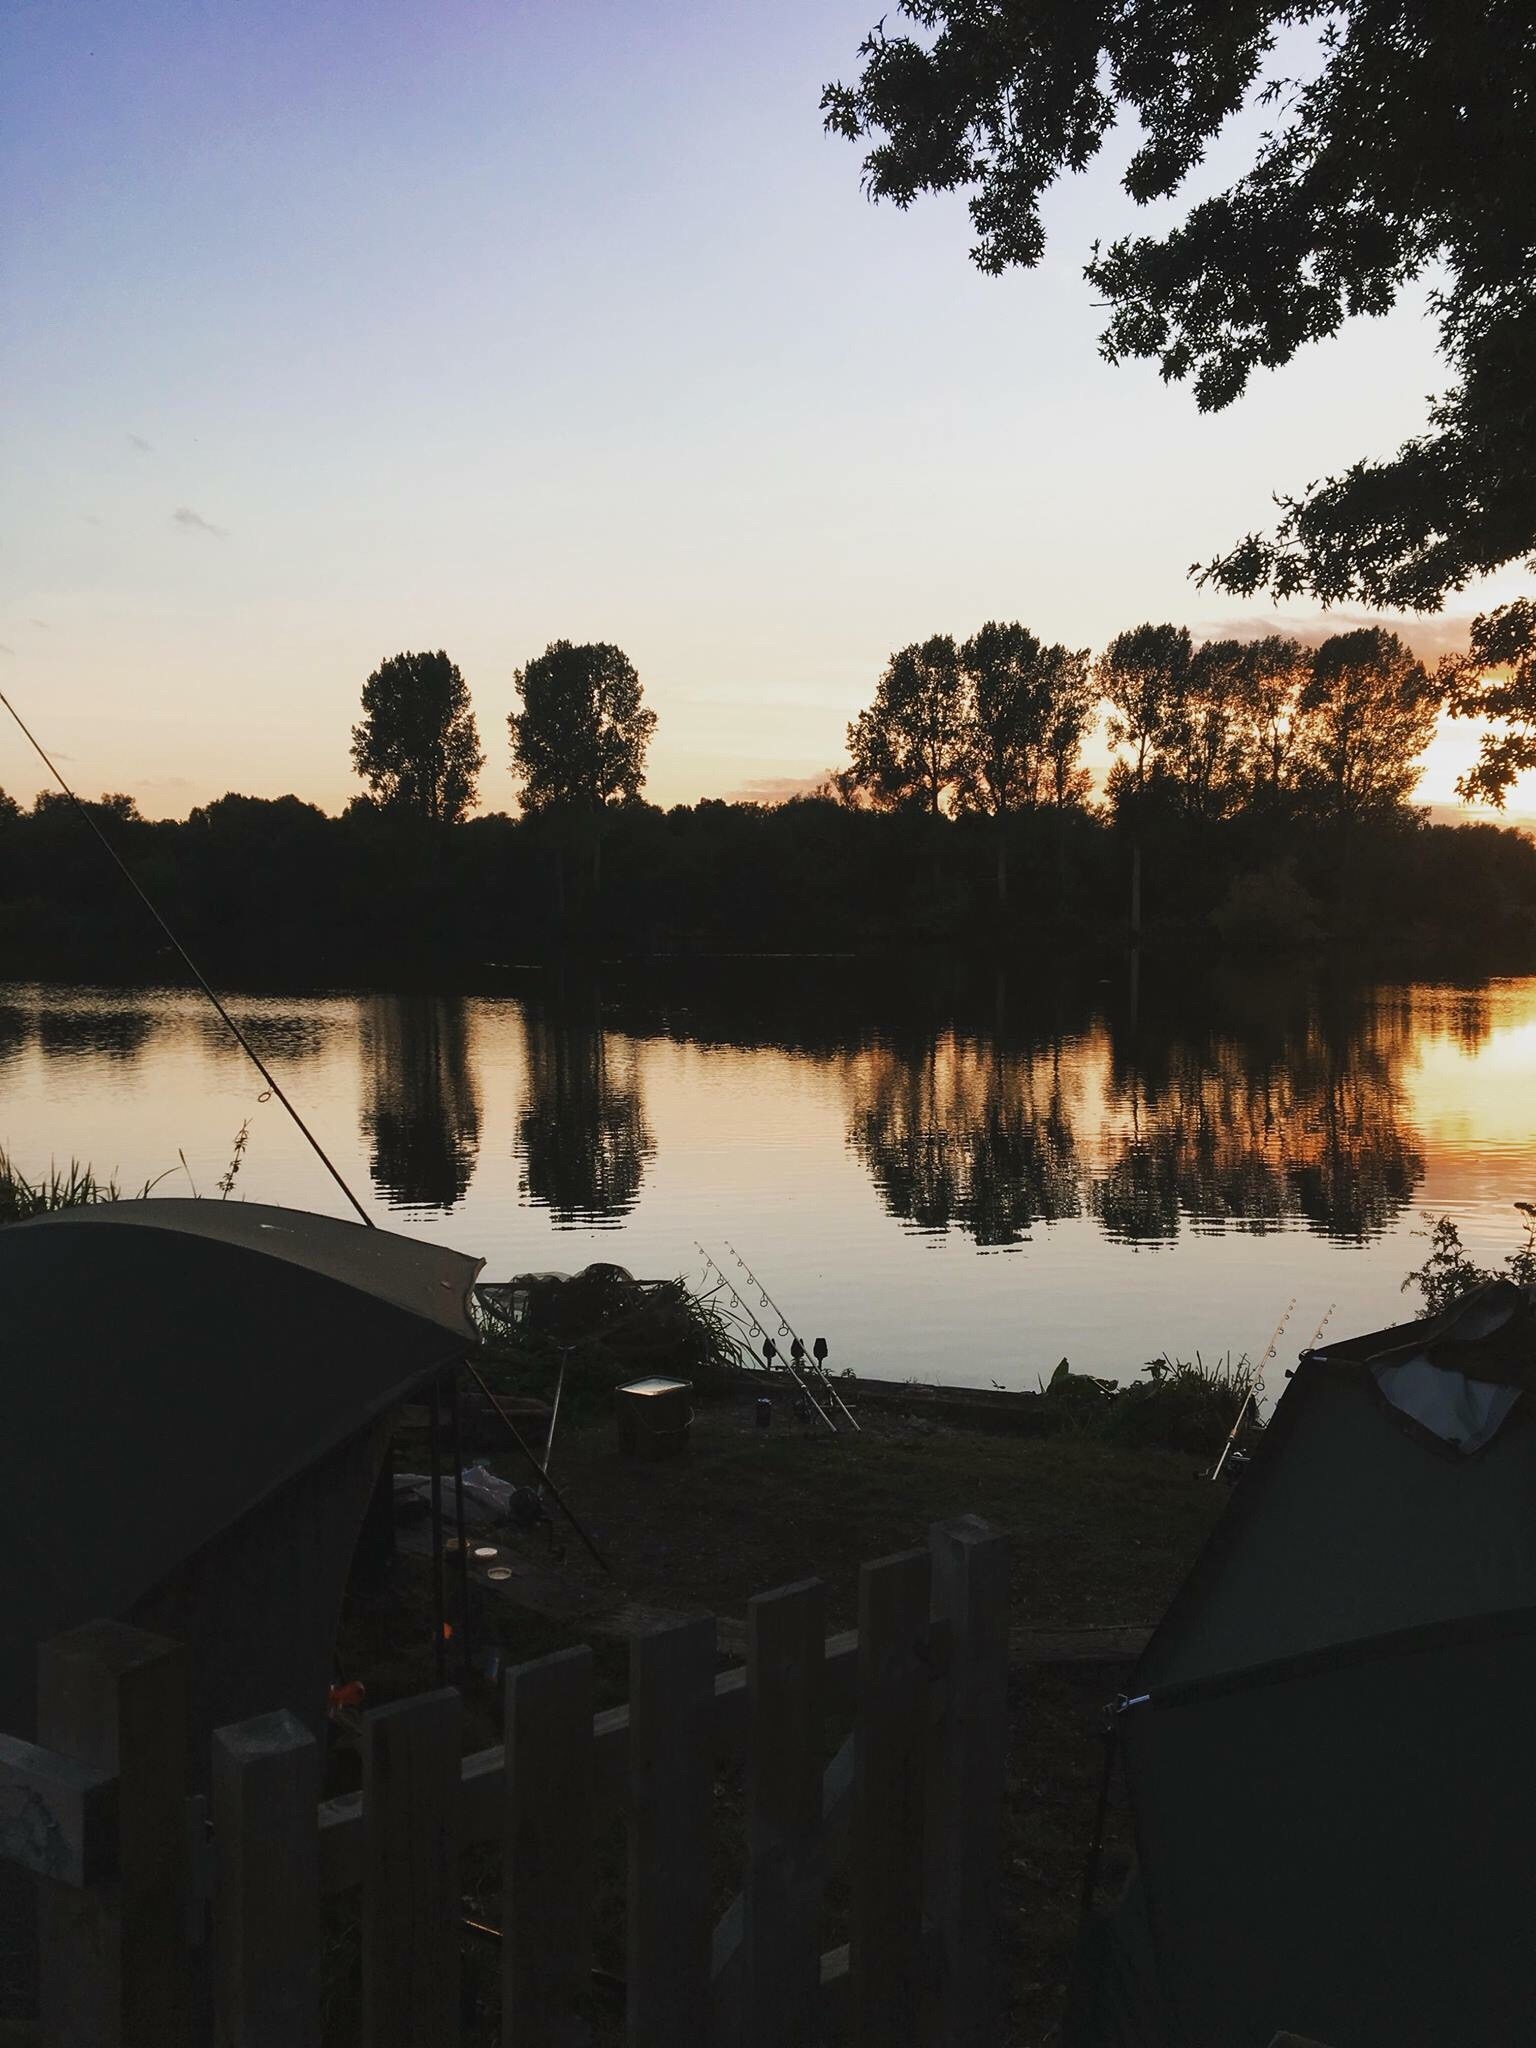 Understanding Fishing – a guide for fishing widows (part three)